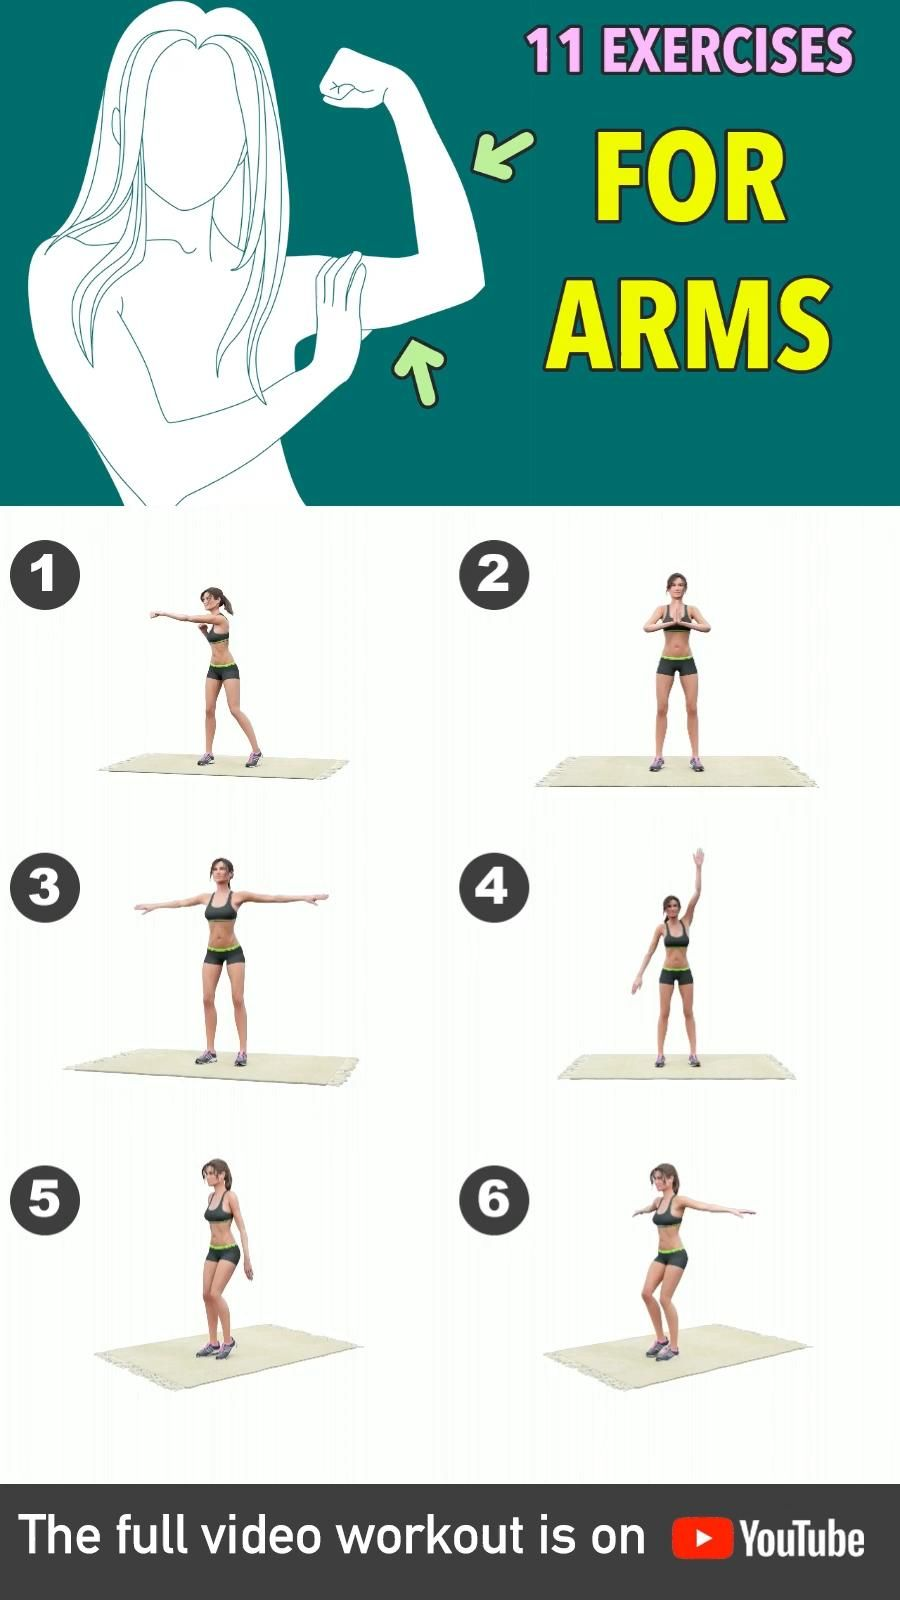 11 Best Exercises For Arms - tone and tighten upper body